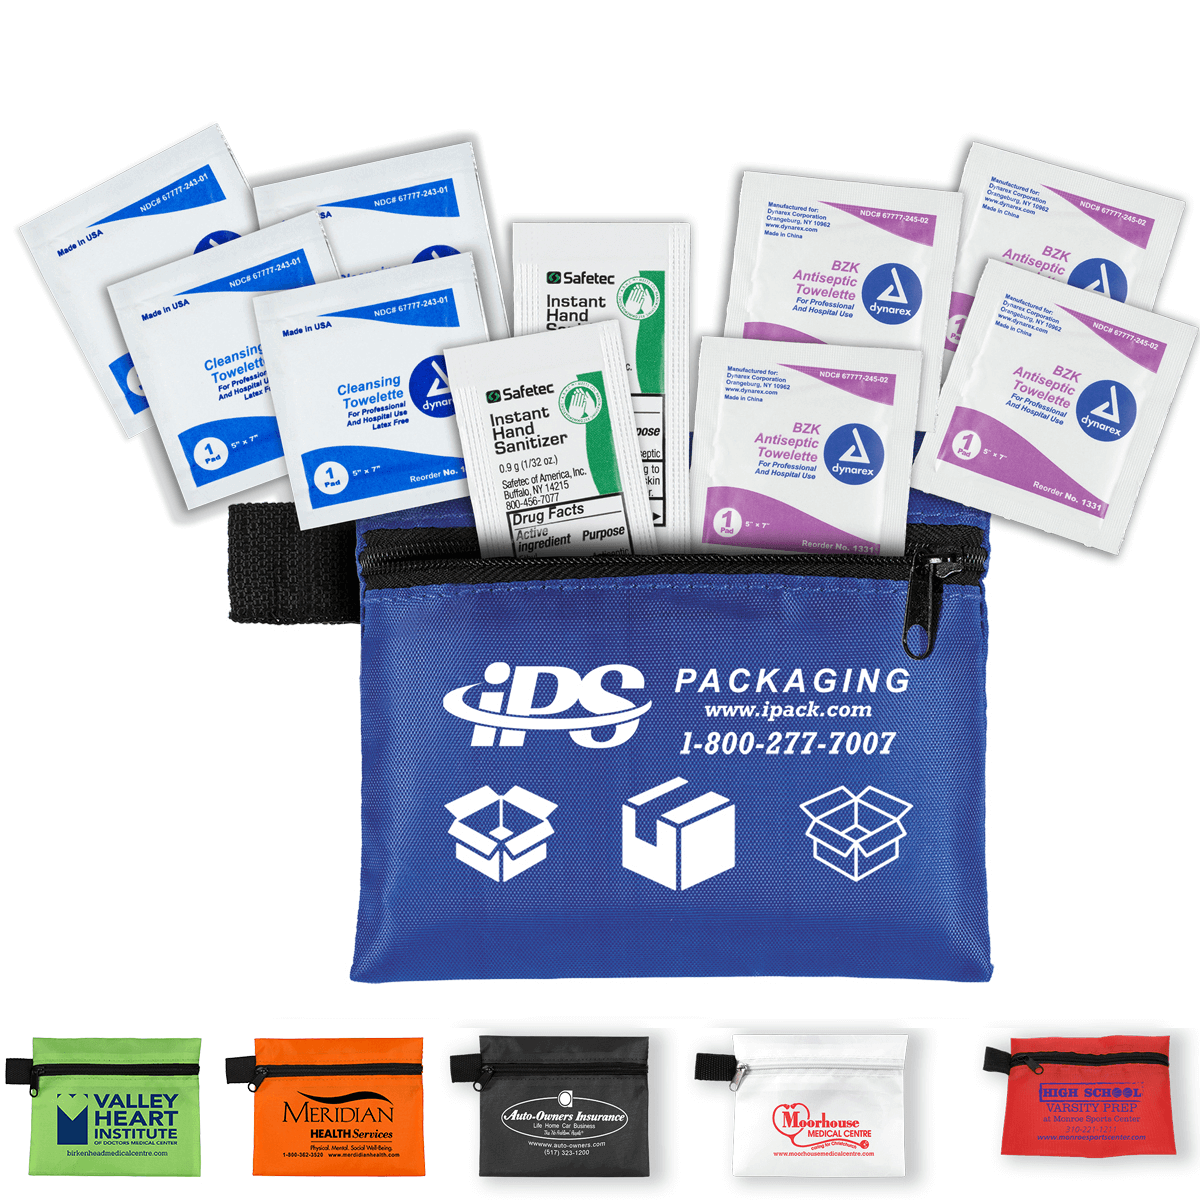 10 Piece Healthy Antiseptic Pack in Zipper Pouch - These heathly antispectic packs include hand sanitizer and antiseptic cleaning towelettes in a zippered pouch with your custom printed logo.